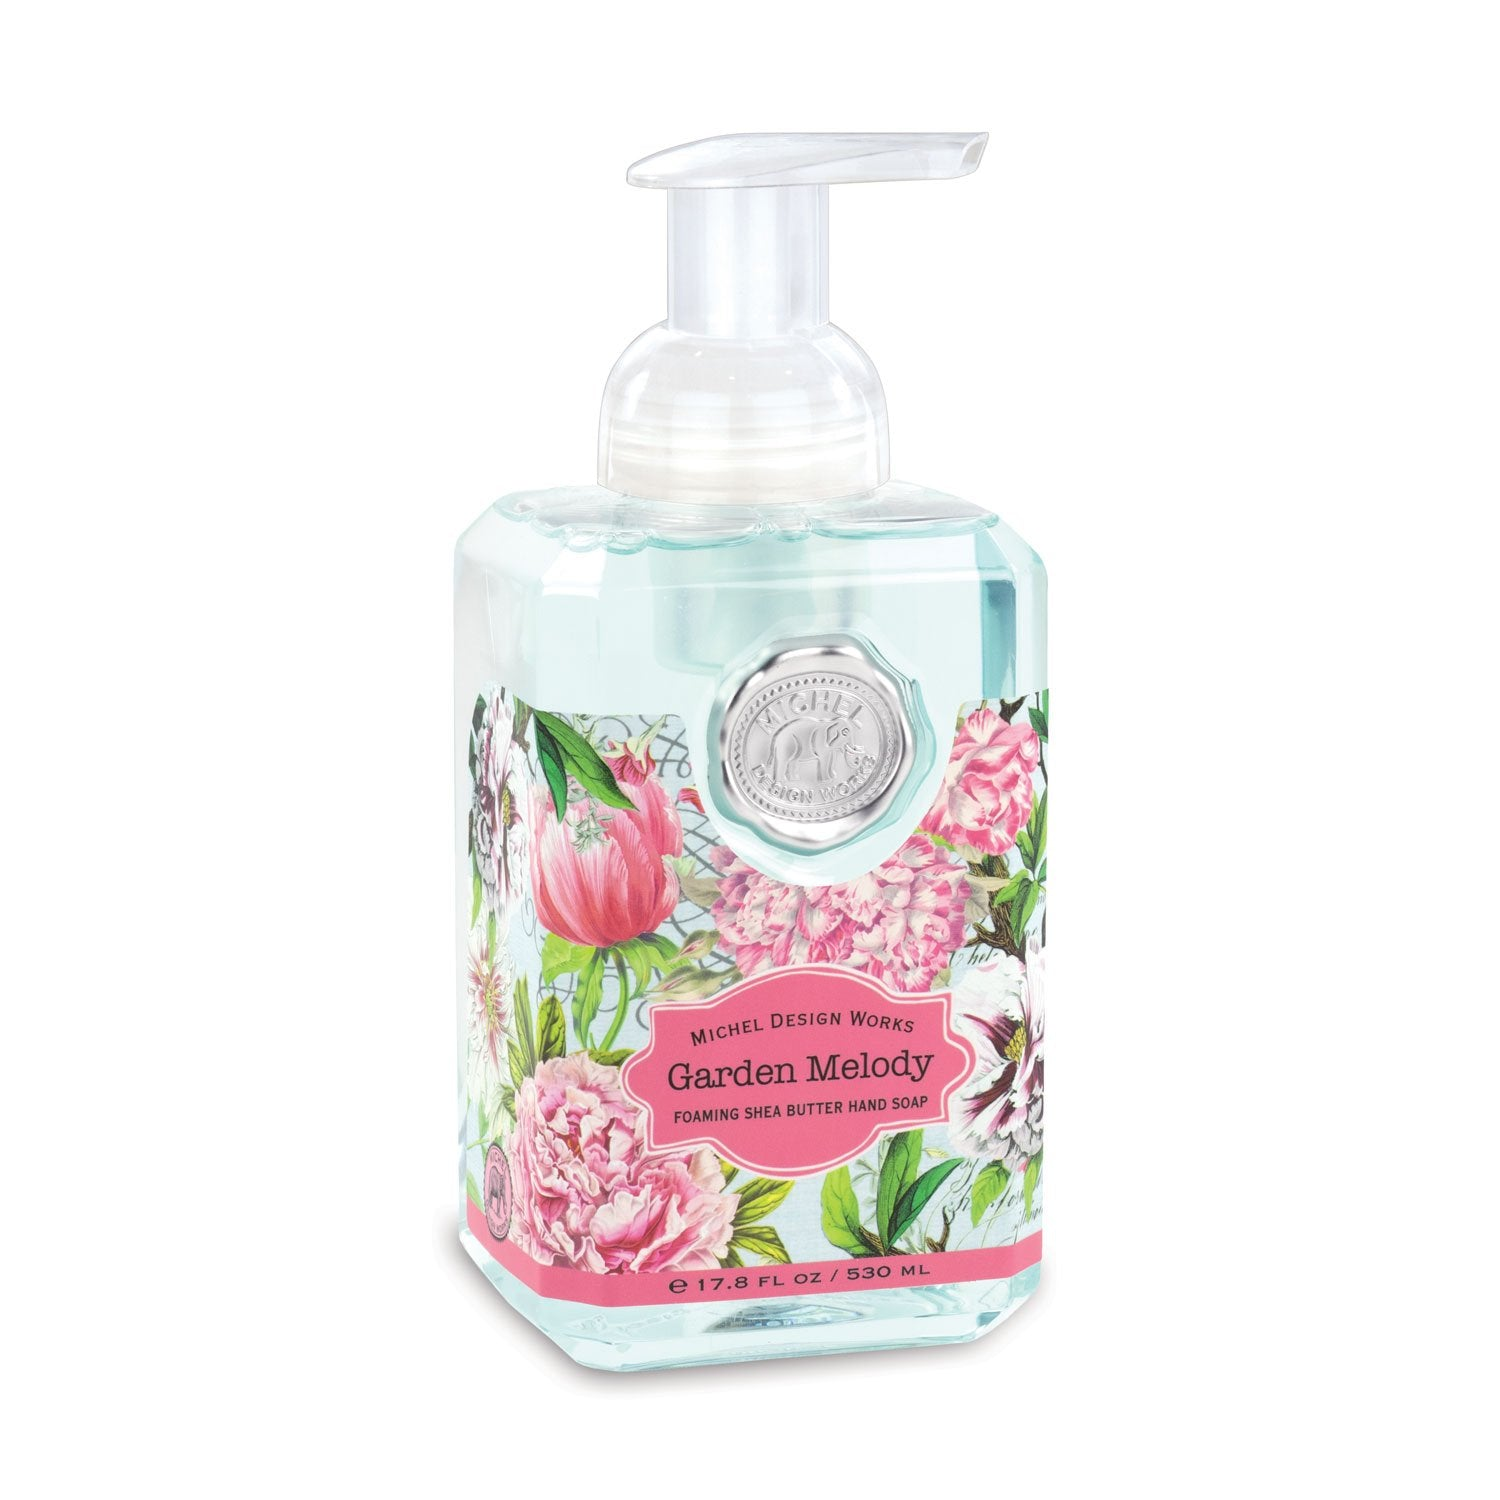 Garden Melody Foaming Soap